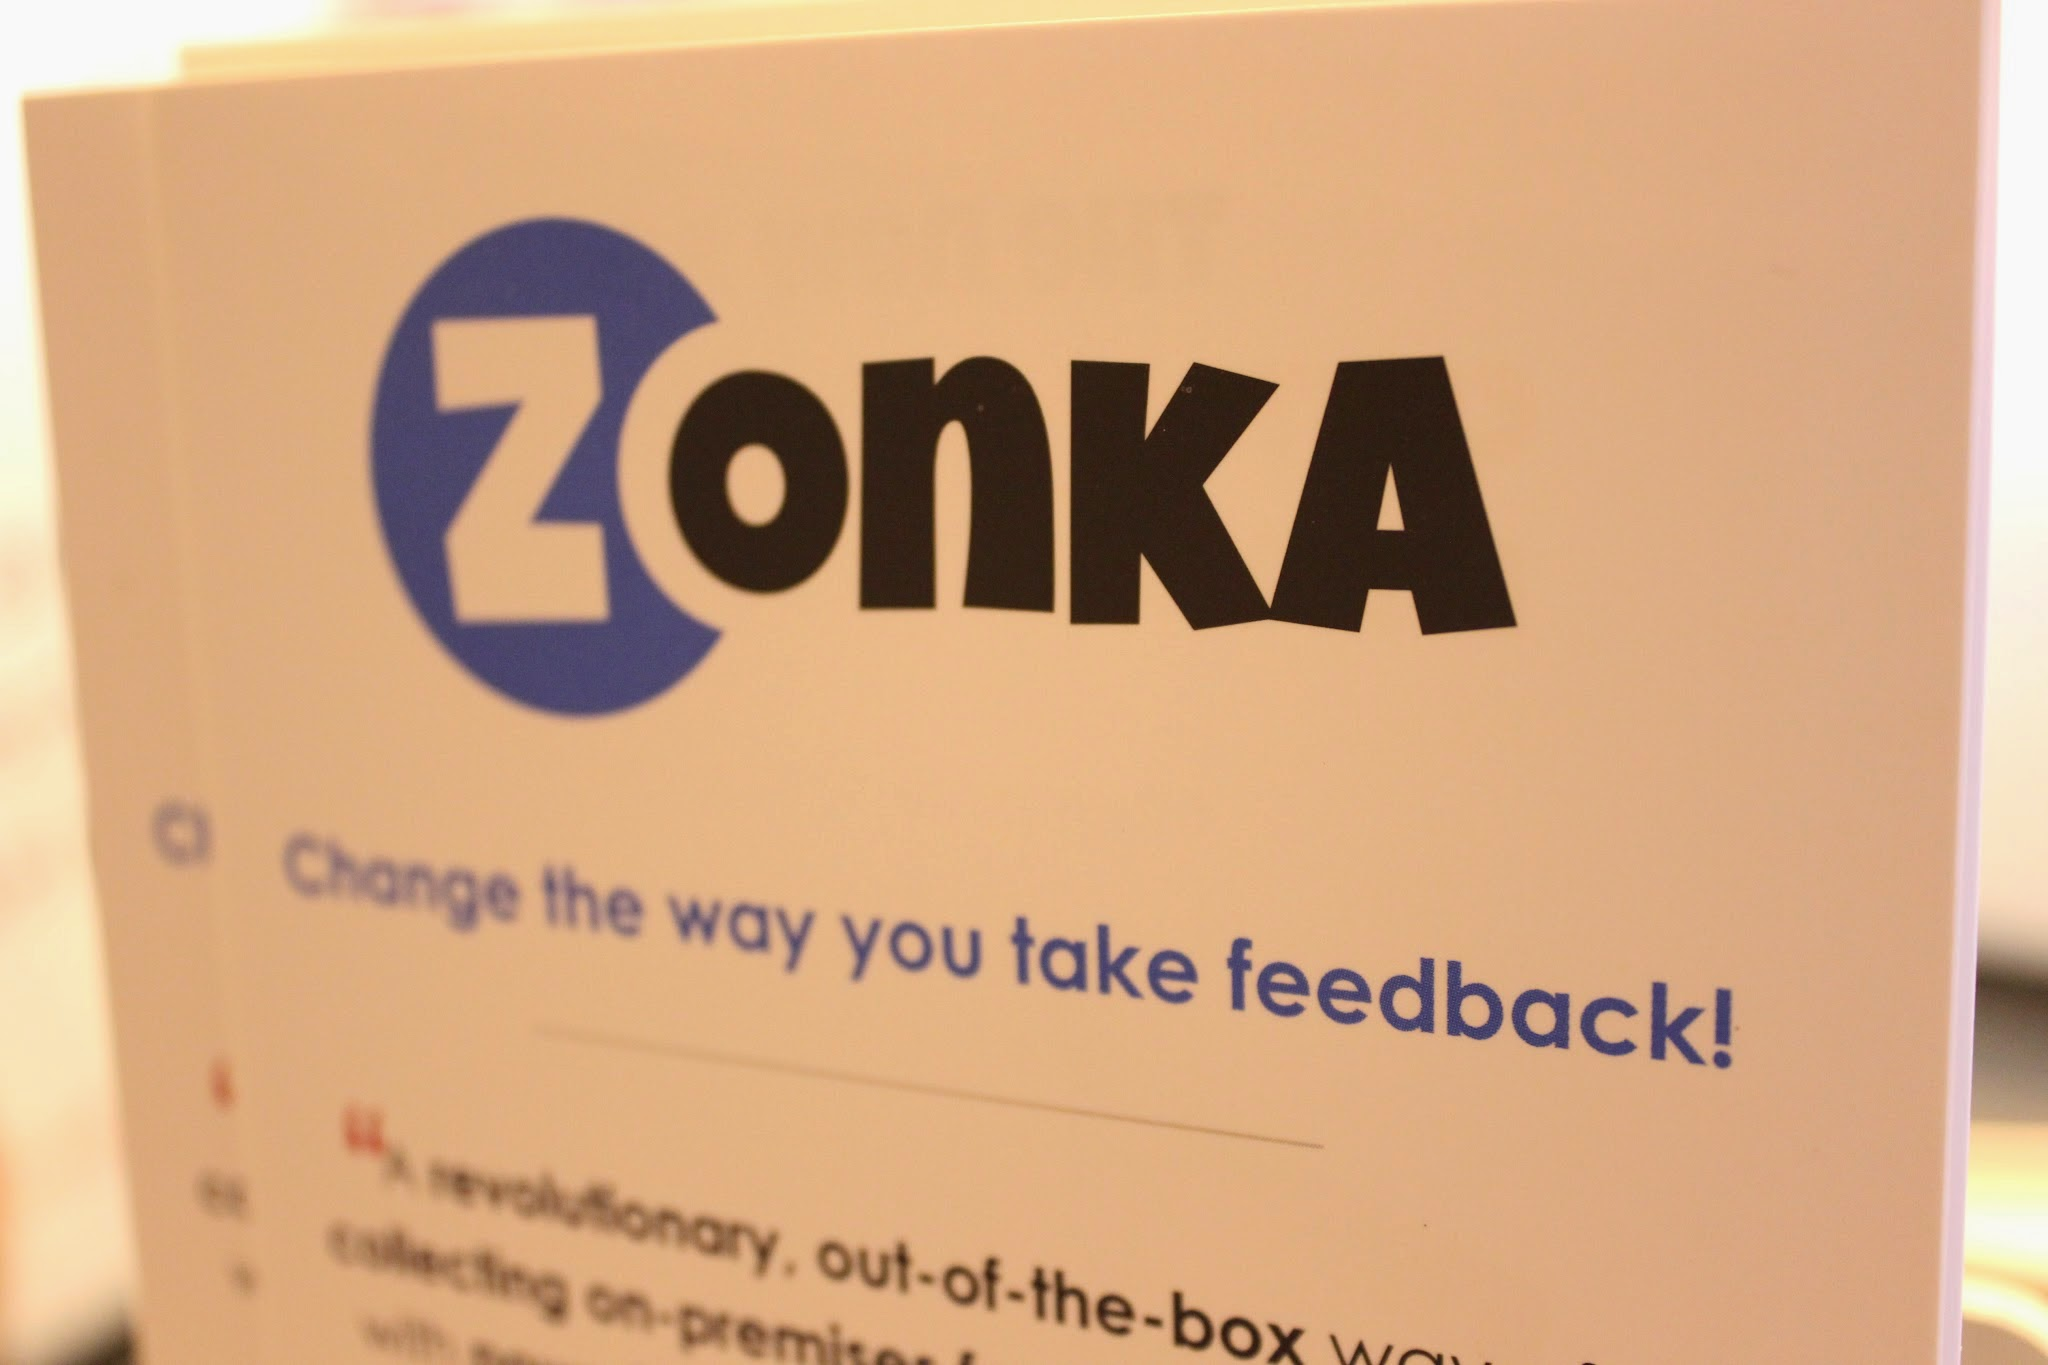 Zonka continues to shine at The Restaurant Show - Day 2 update